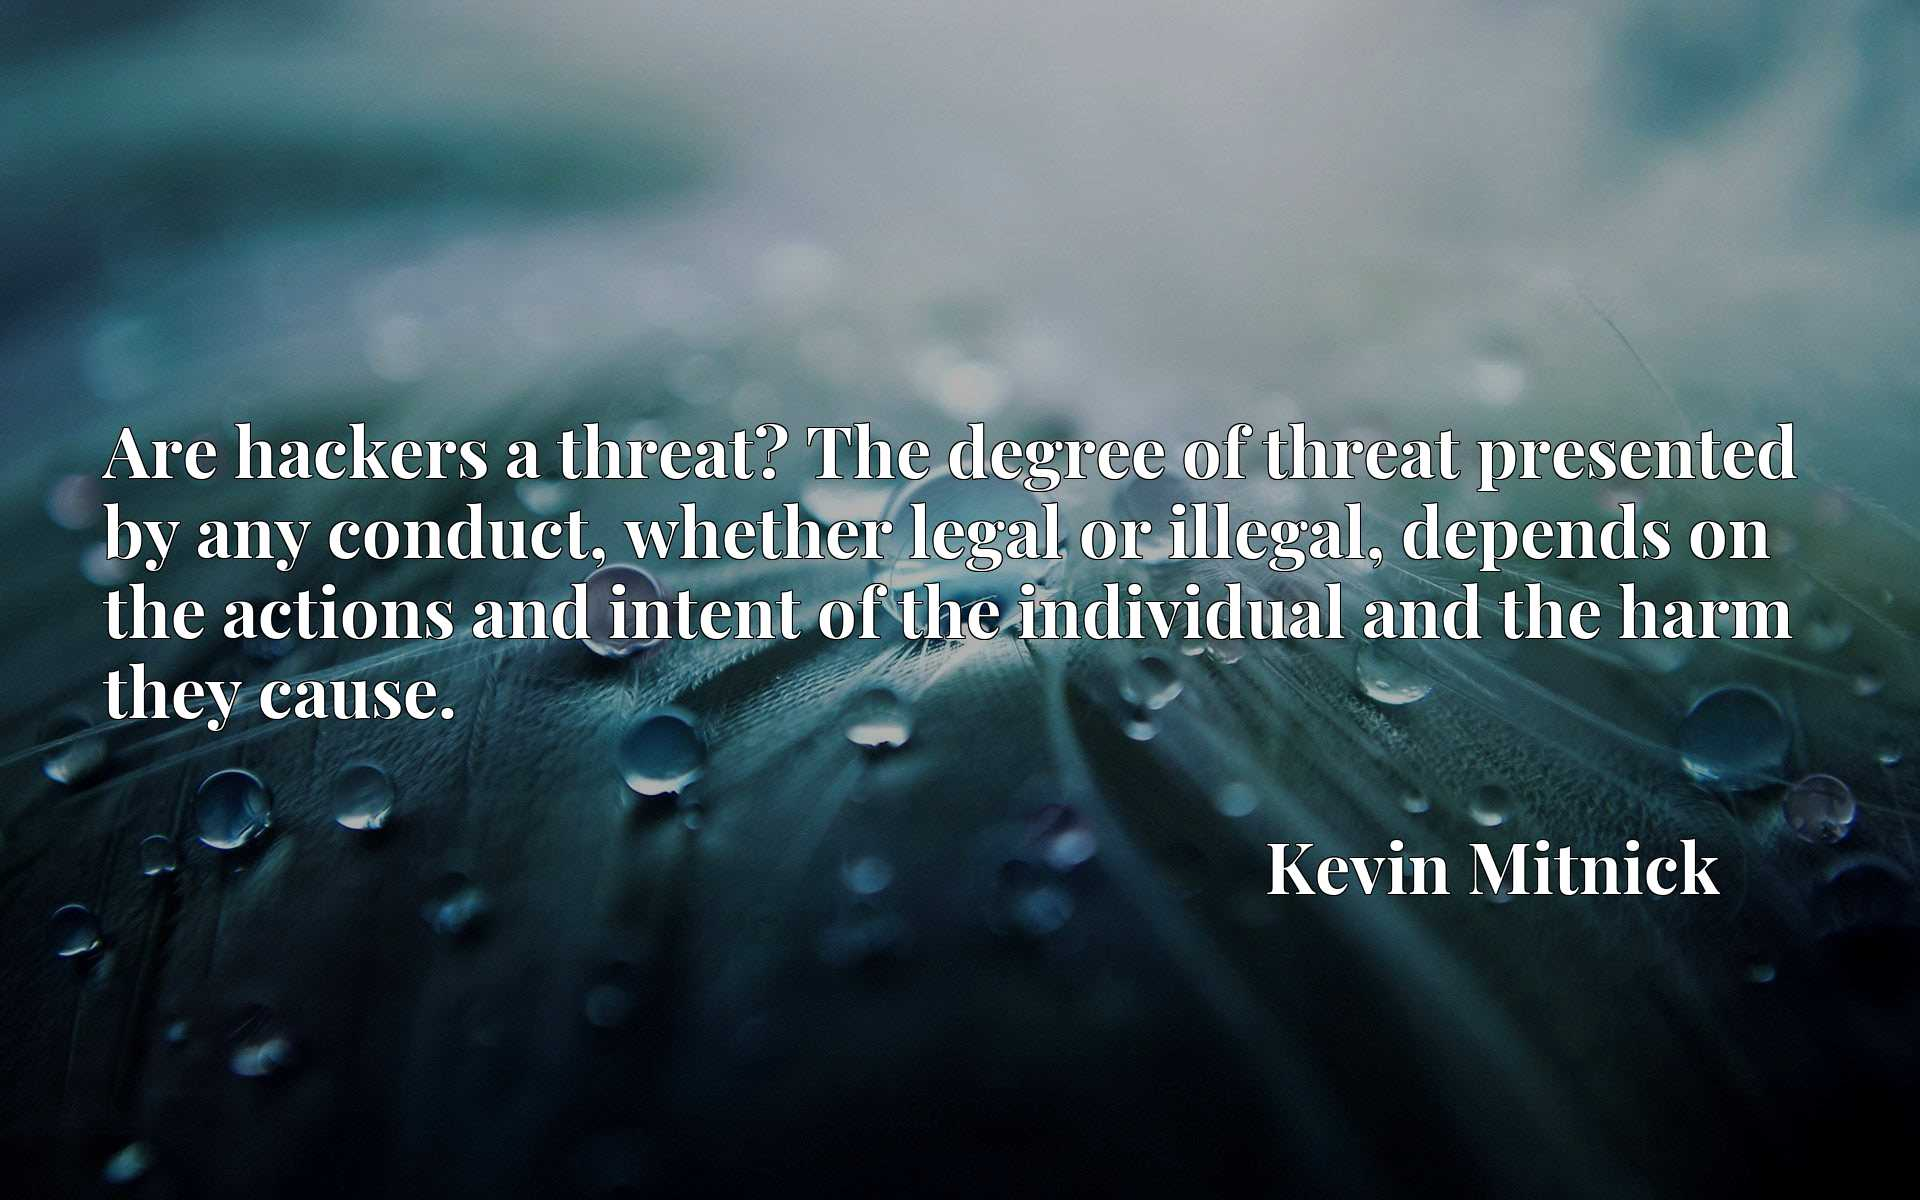 Quote Picture :Are hackers a threat? The degree of threat presented by any conduct, whether legal or illegal, depends on the actions and intent of the individual and the harm they cause.